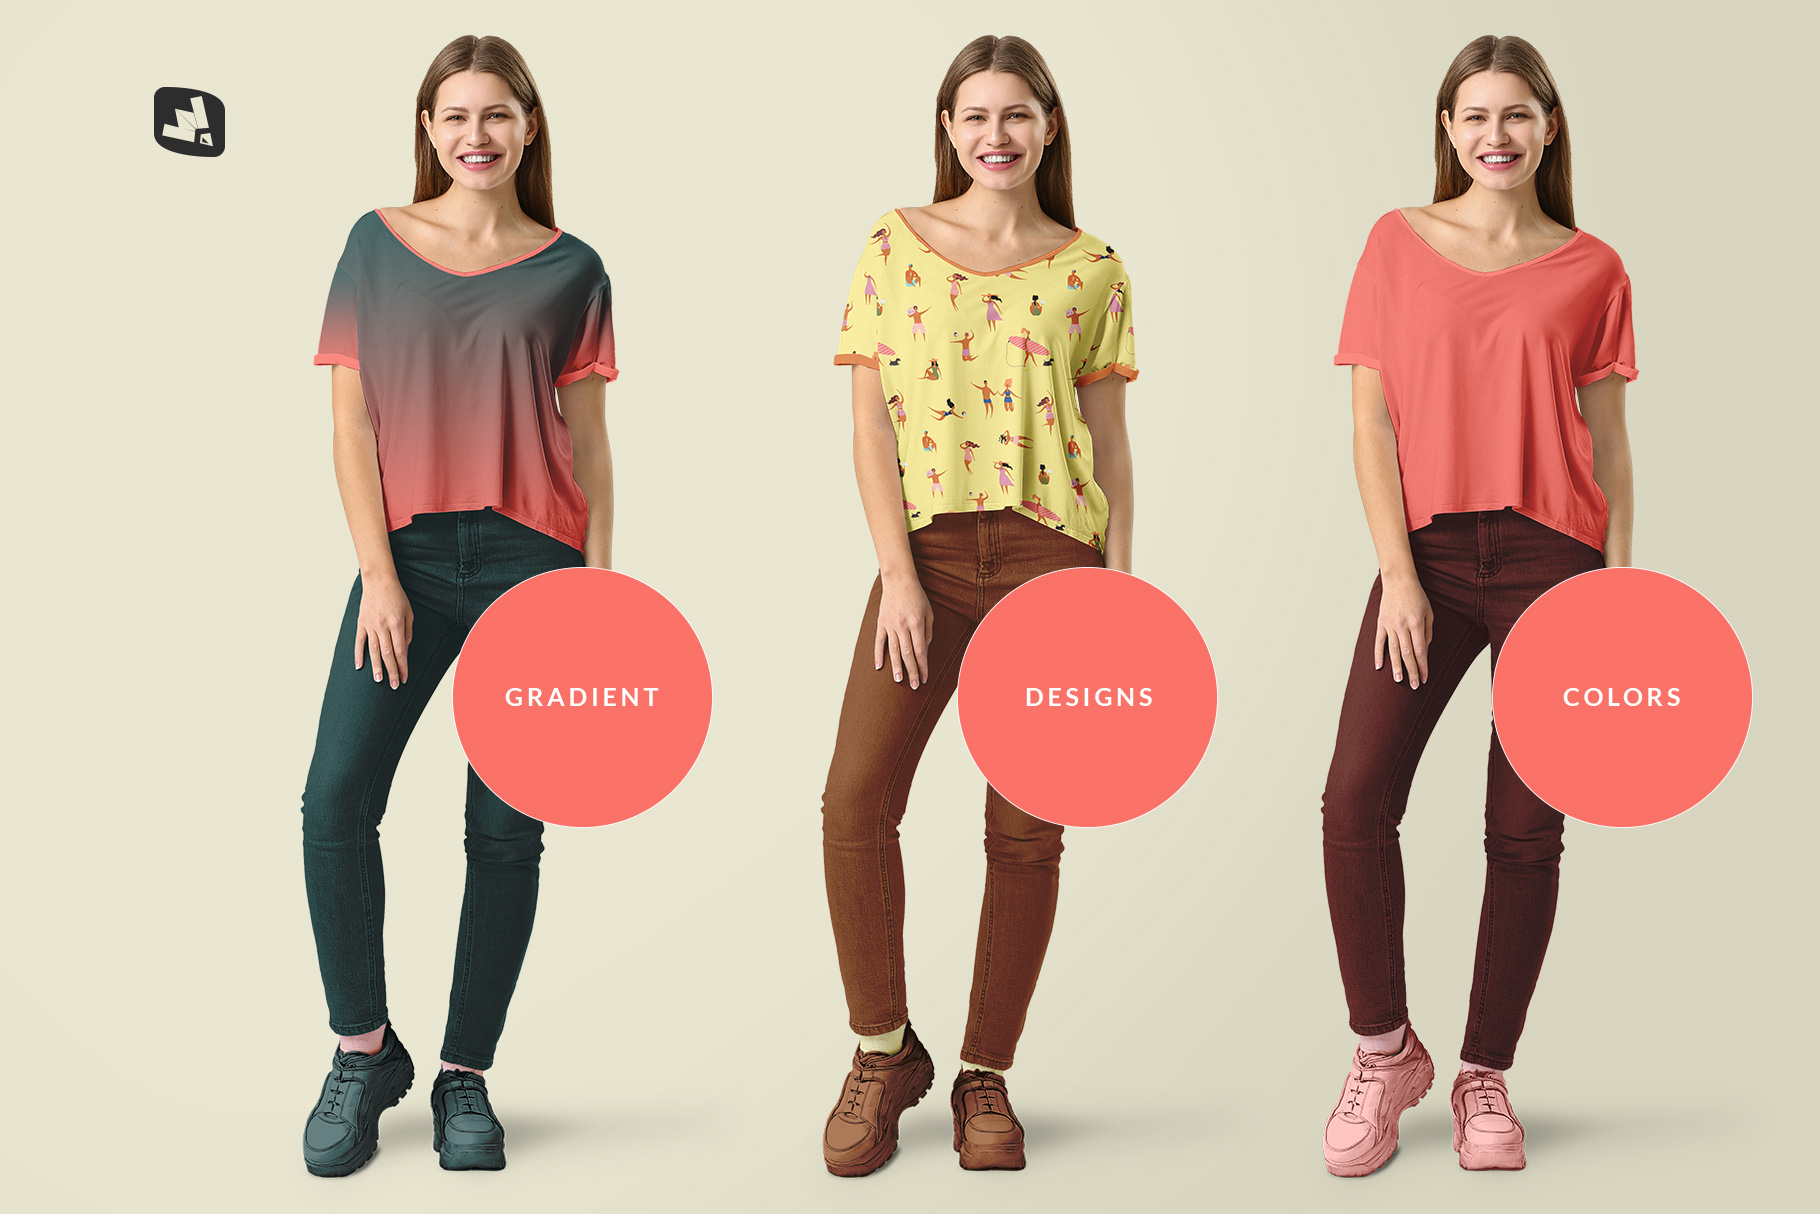 types of the female everyday outfit mockup